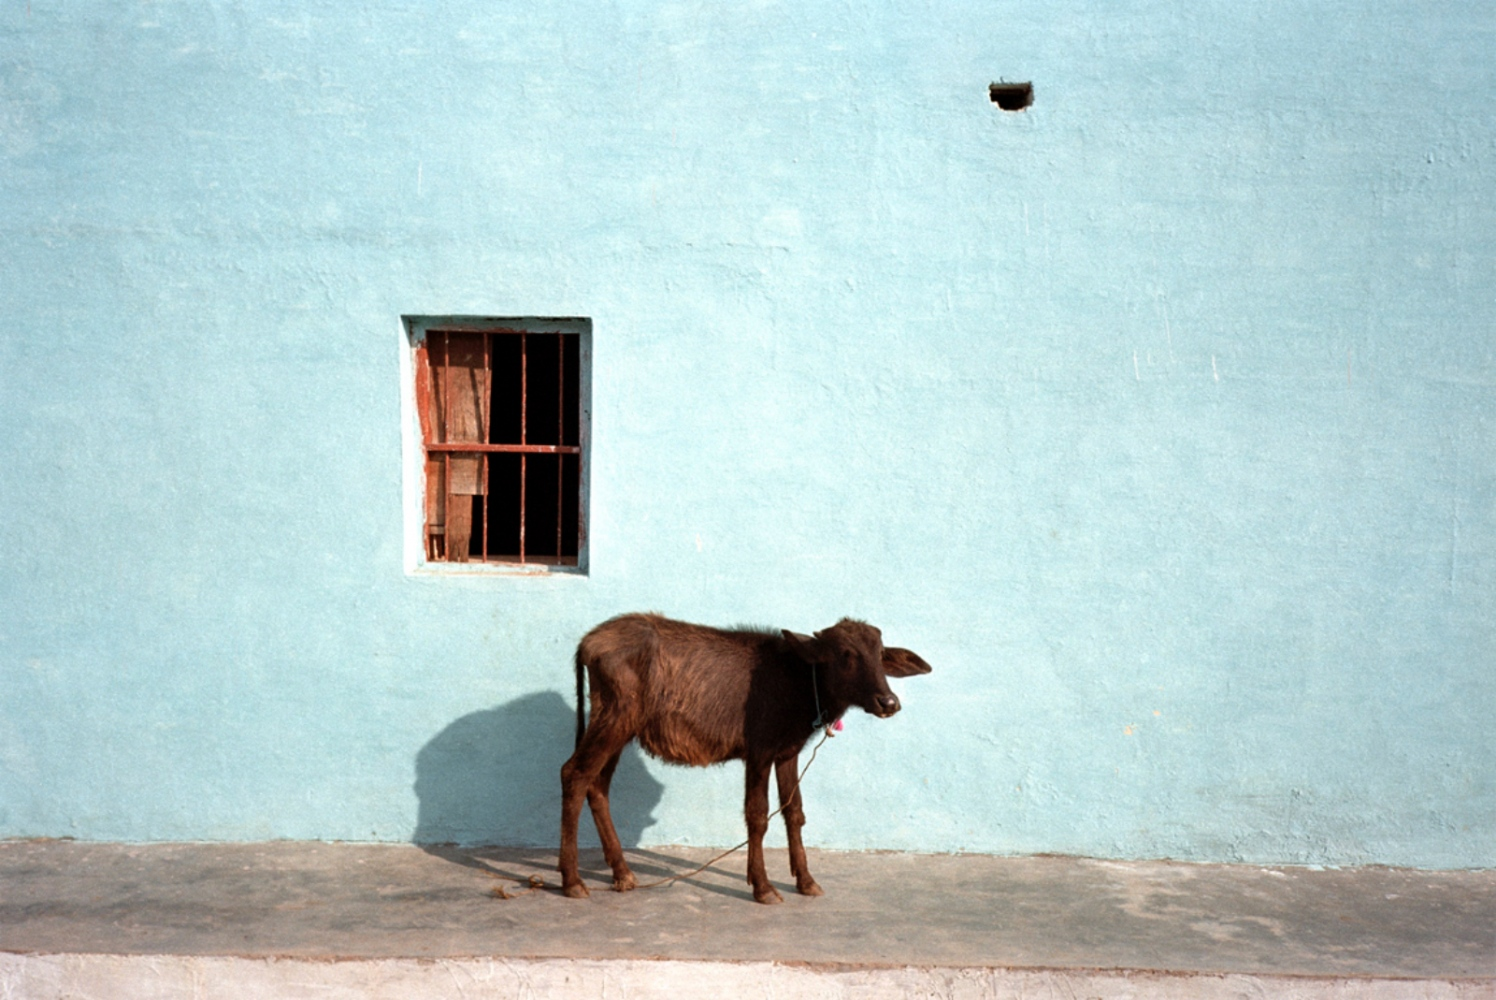 Cow and Blue Wall, Okhra, India, November 2003